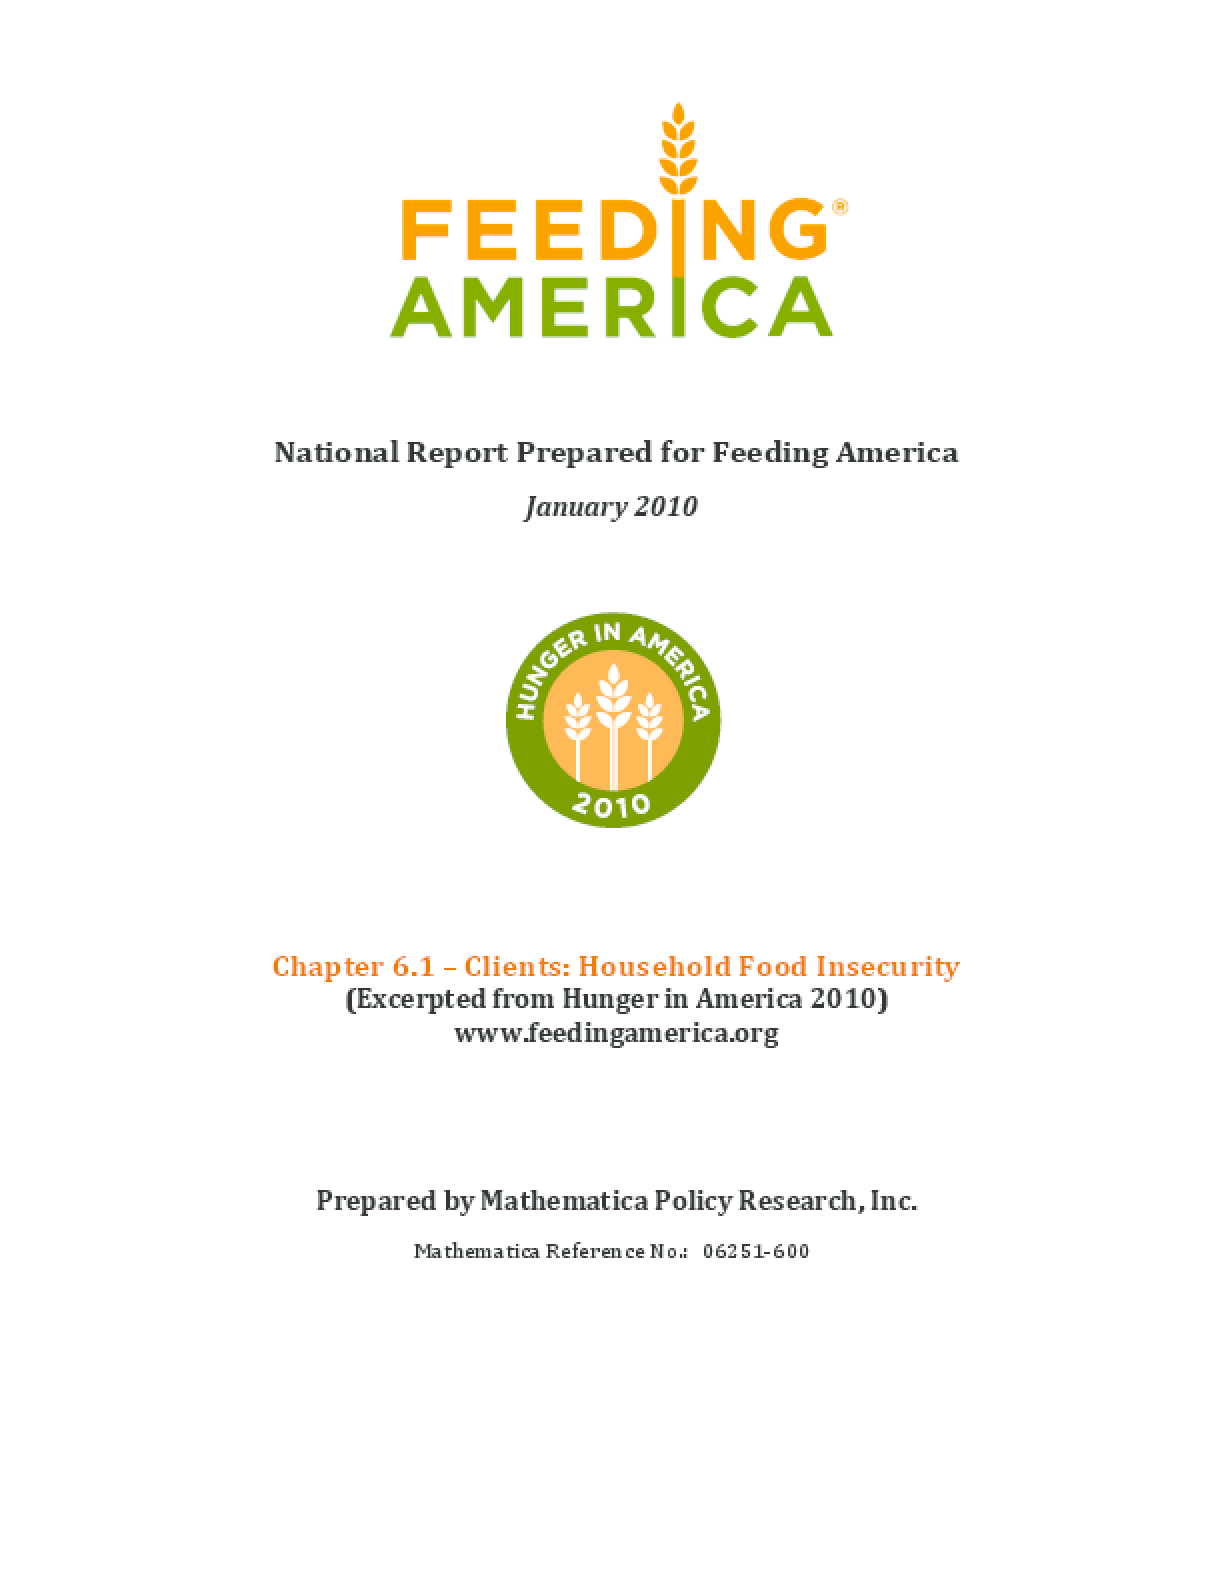 Food Insecurity Among Feeding America Client Households